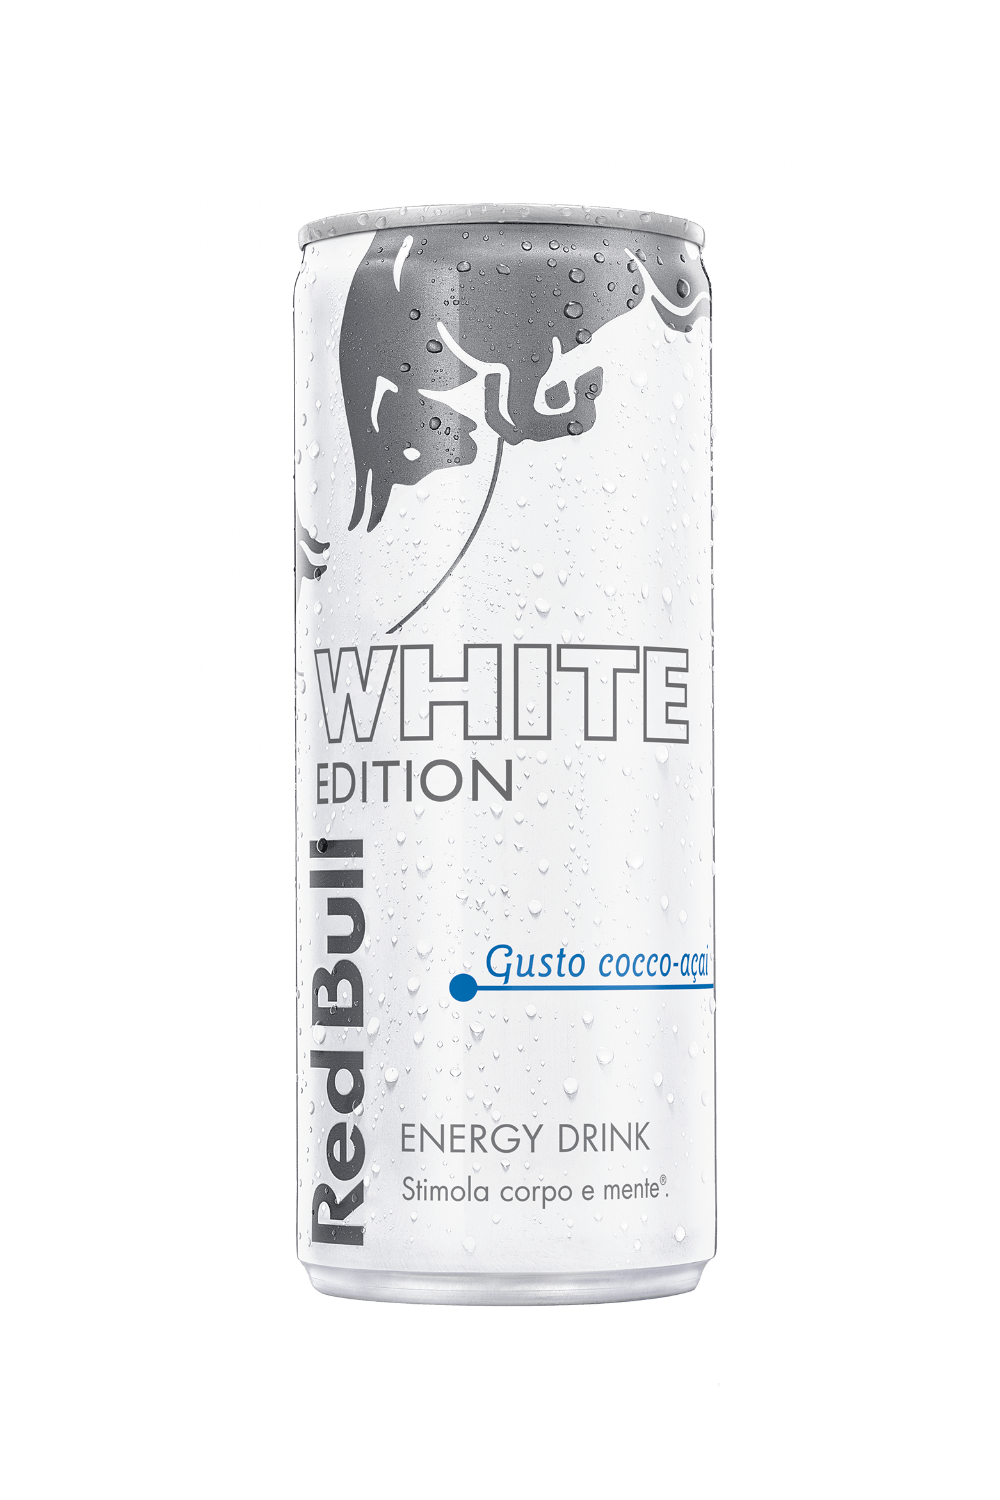 Red Bull Energy Drink White Edition Gusto cocco-açai